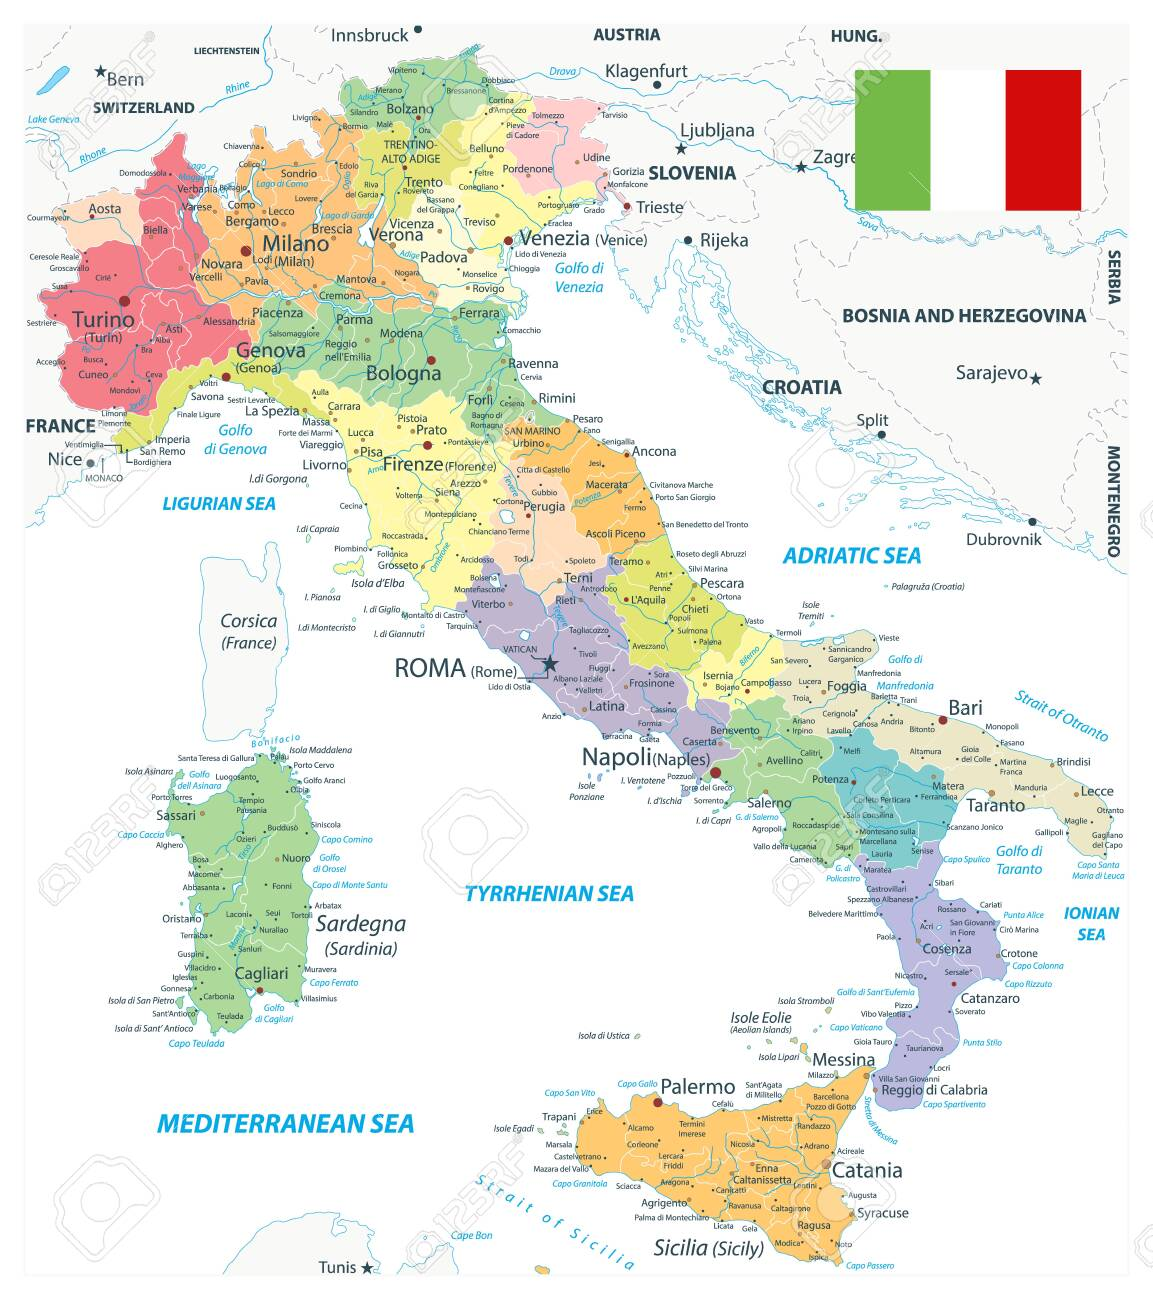 Italy Administrative Divisions Map On White - Highly Detailed Vector Illustration of Italy Map - Image contains layers with administrative divisions map, land names, city names, water objects and it's names. - 145713941